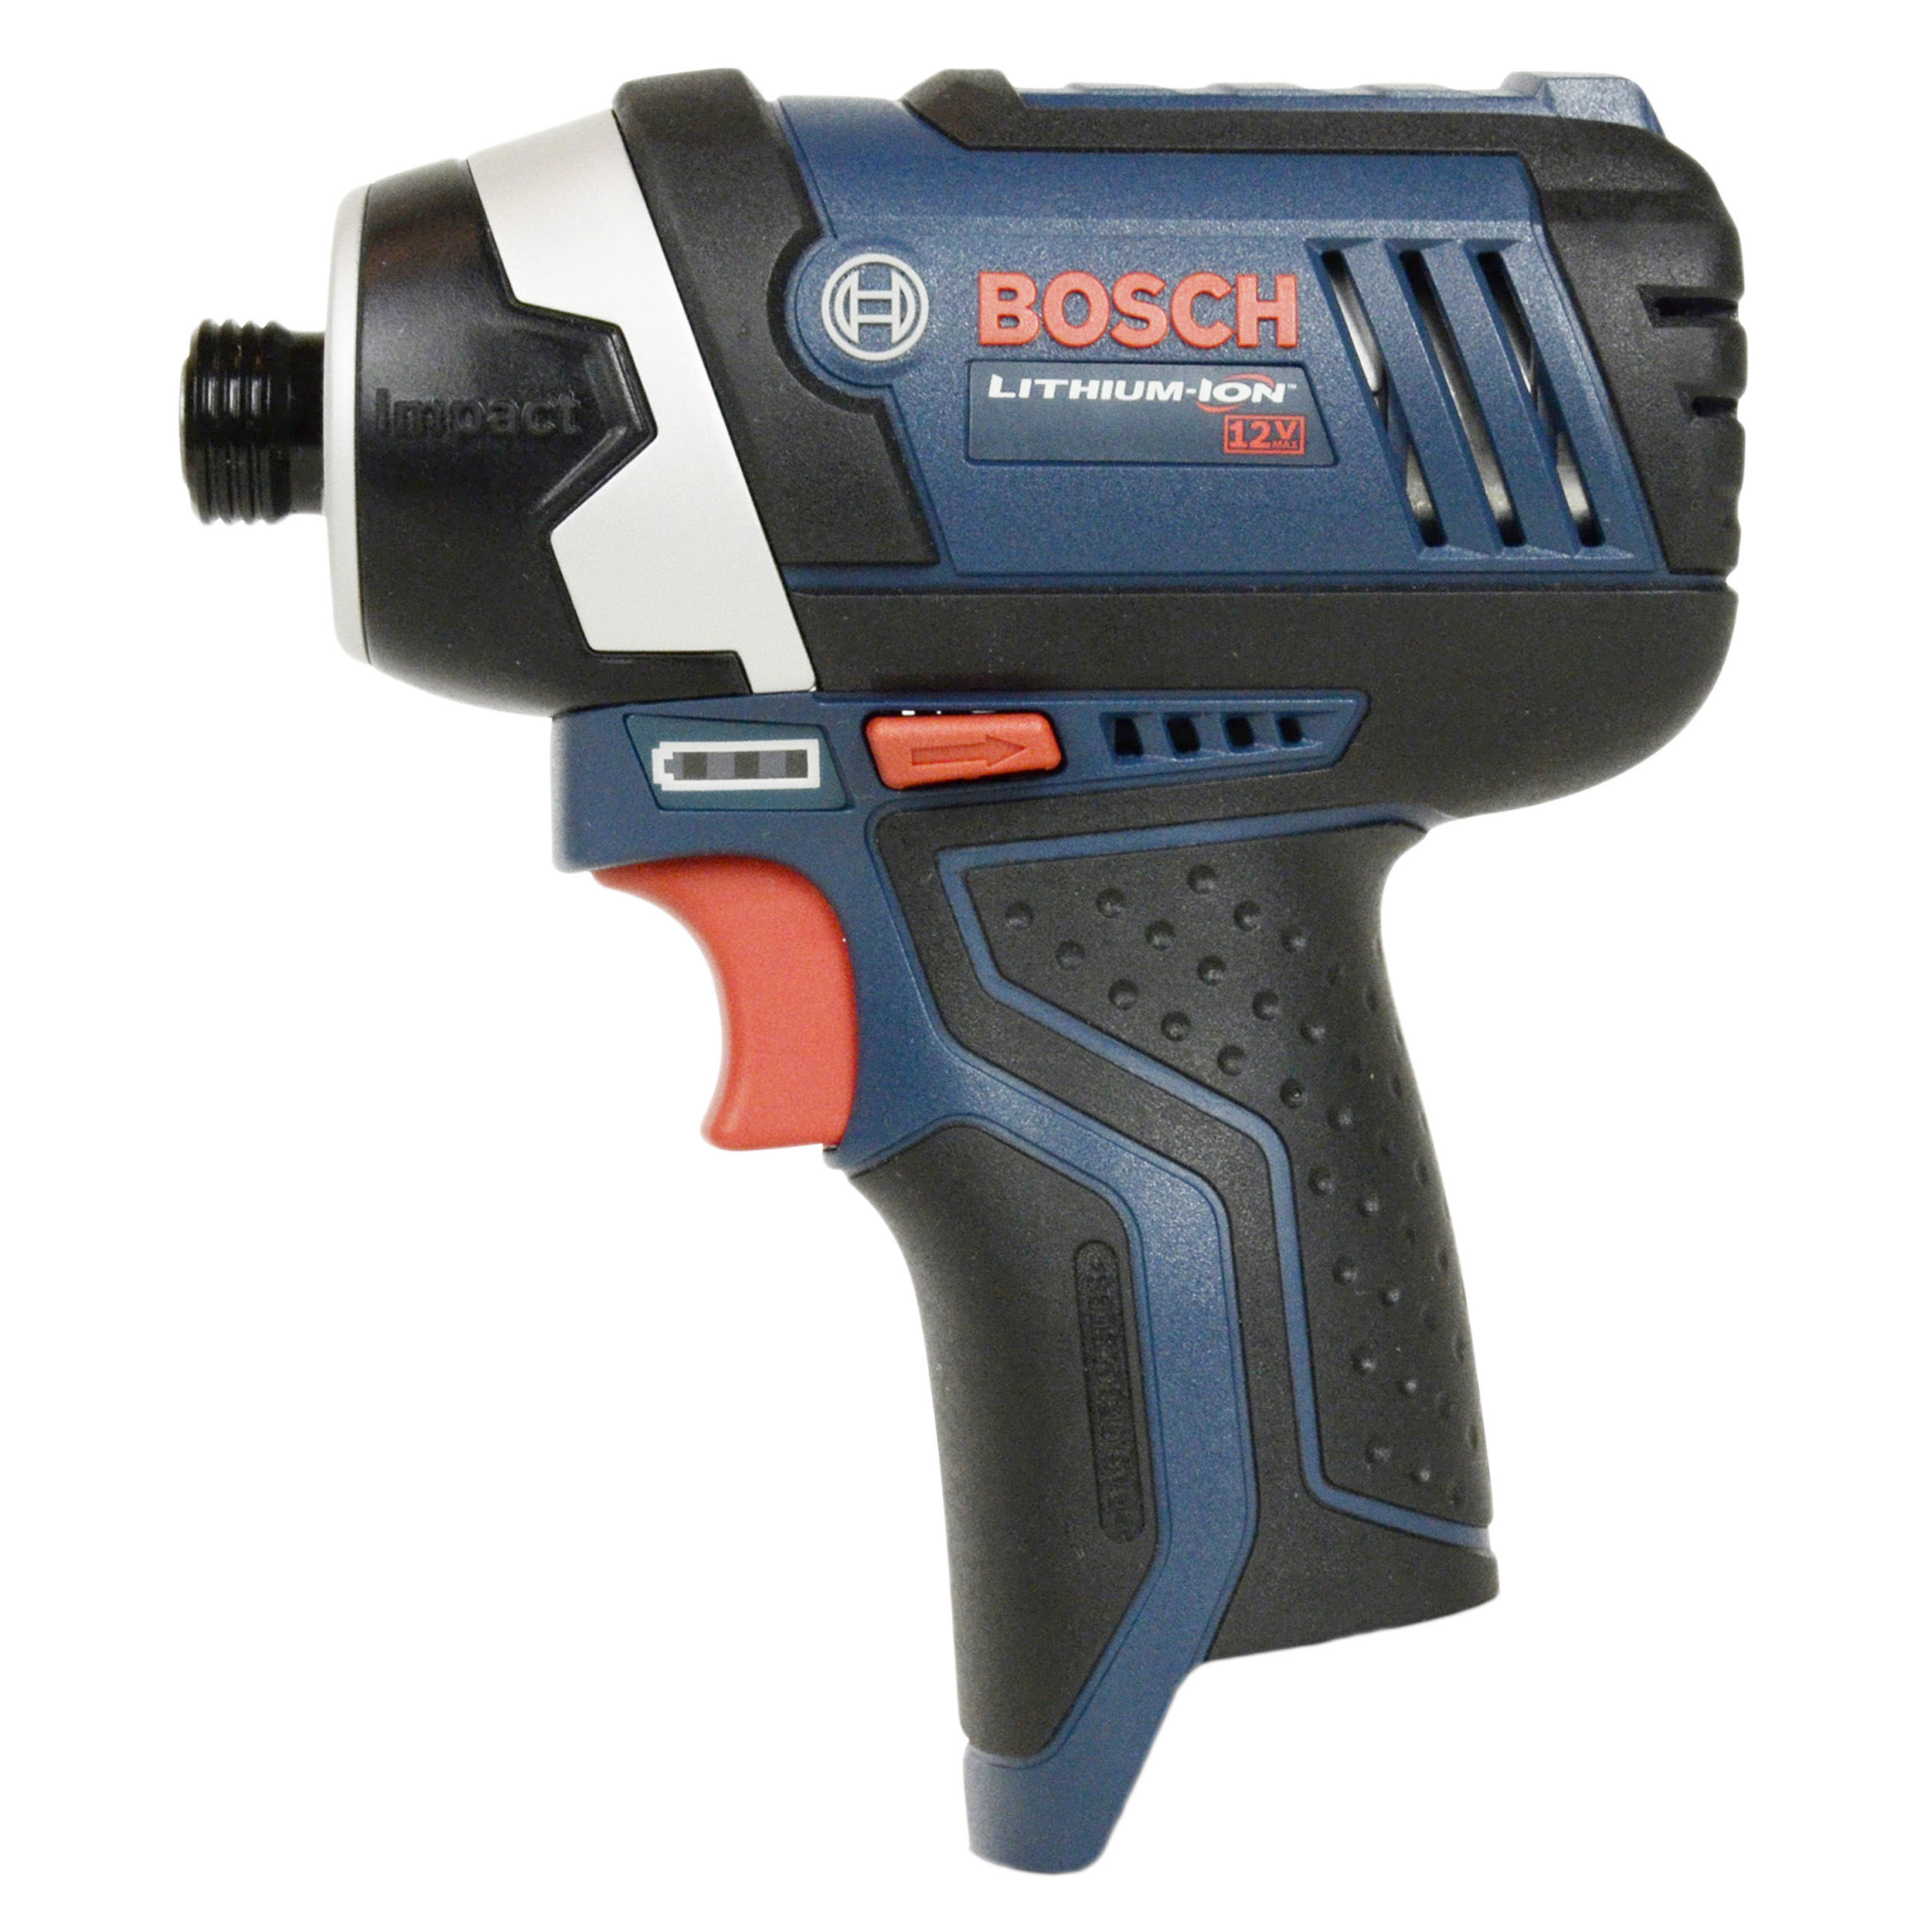 "Bosch Tools PS41 10.8V-12V 1/4"" Hex Max Cordless Lithium-Ion Impact Driver, Bare Tool"